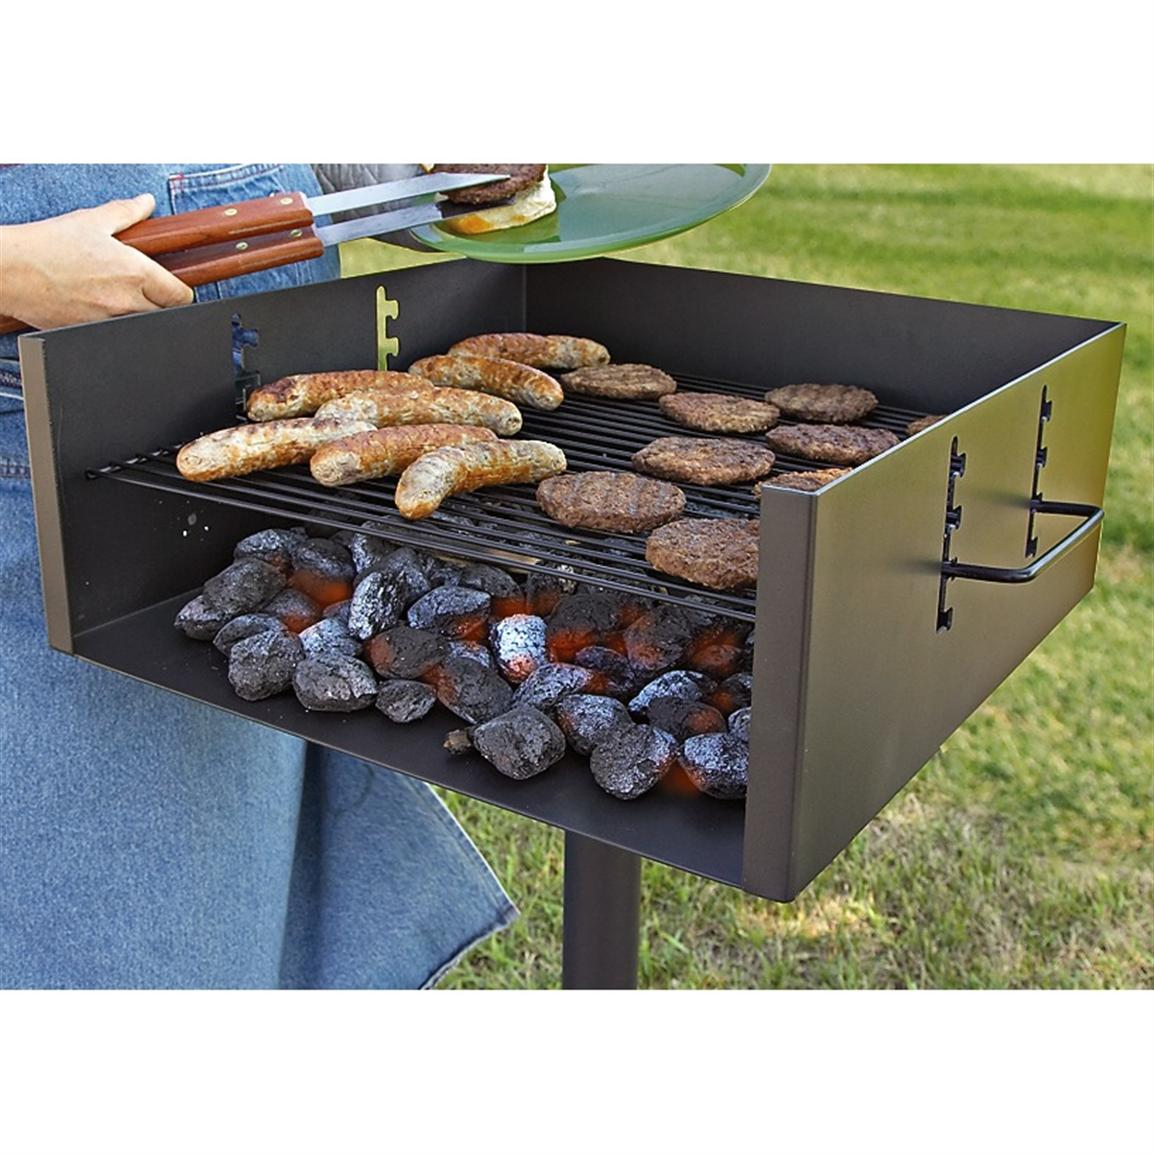 Guide Gear Heavy-Duty Park-Style Grill, Extra Large